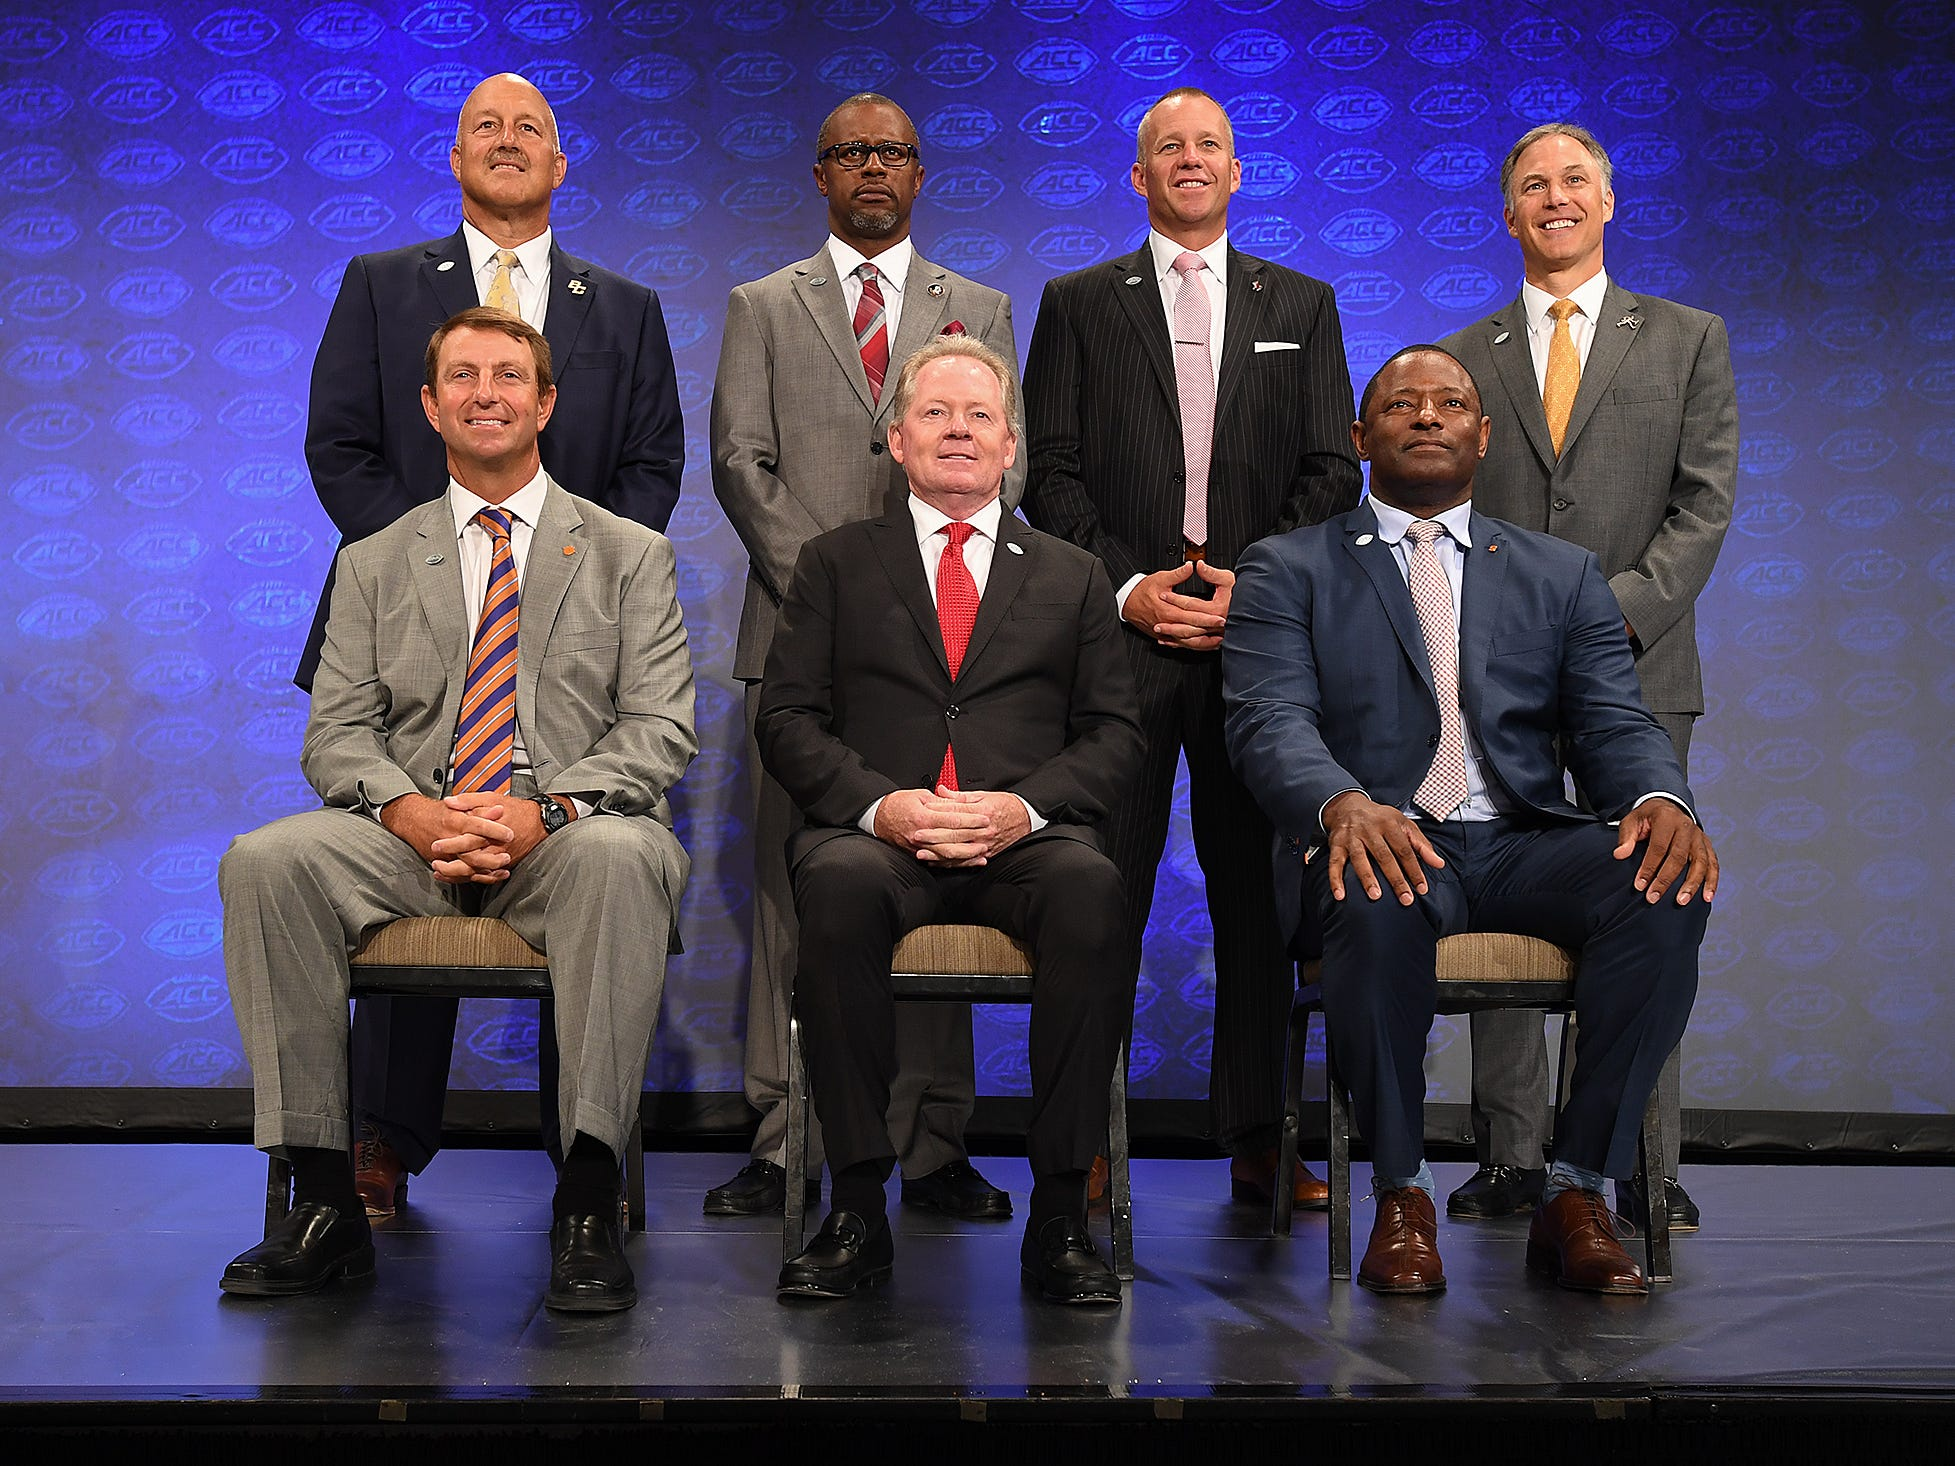 Coaches from the Atlantic Division pose for a group photo at the ACC Football Kickoff in Charlotte, N.C., Thursday, July 19, 2018.